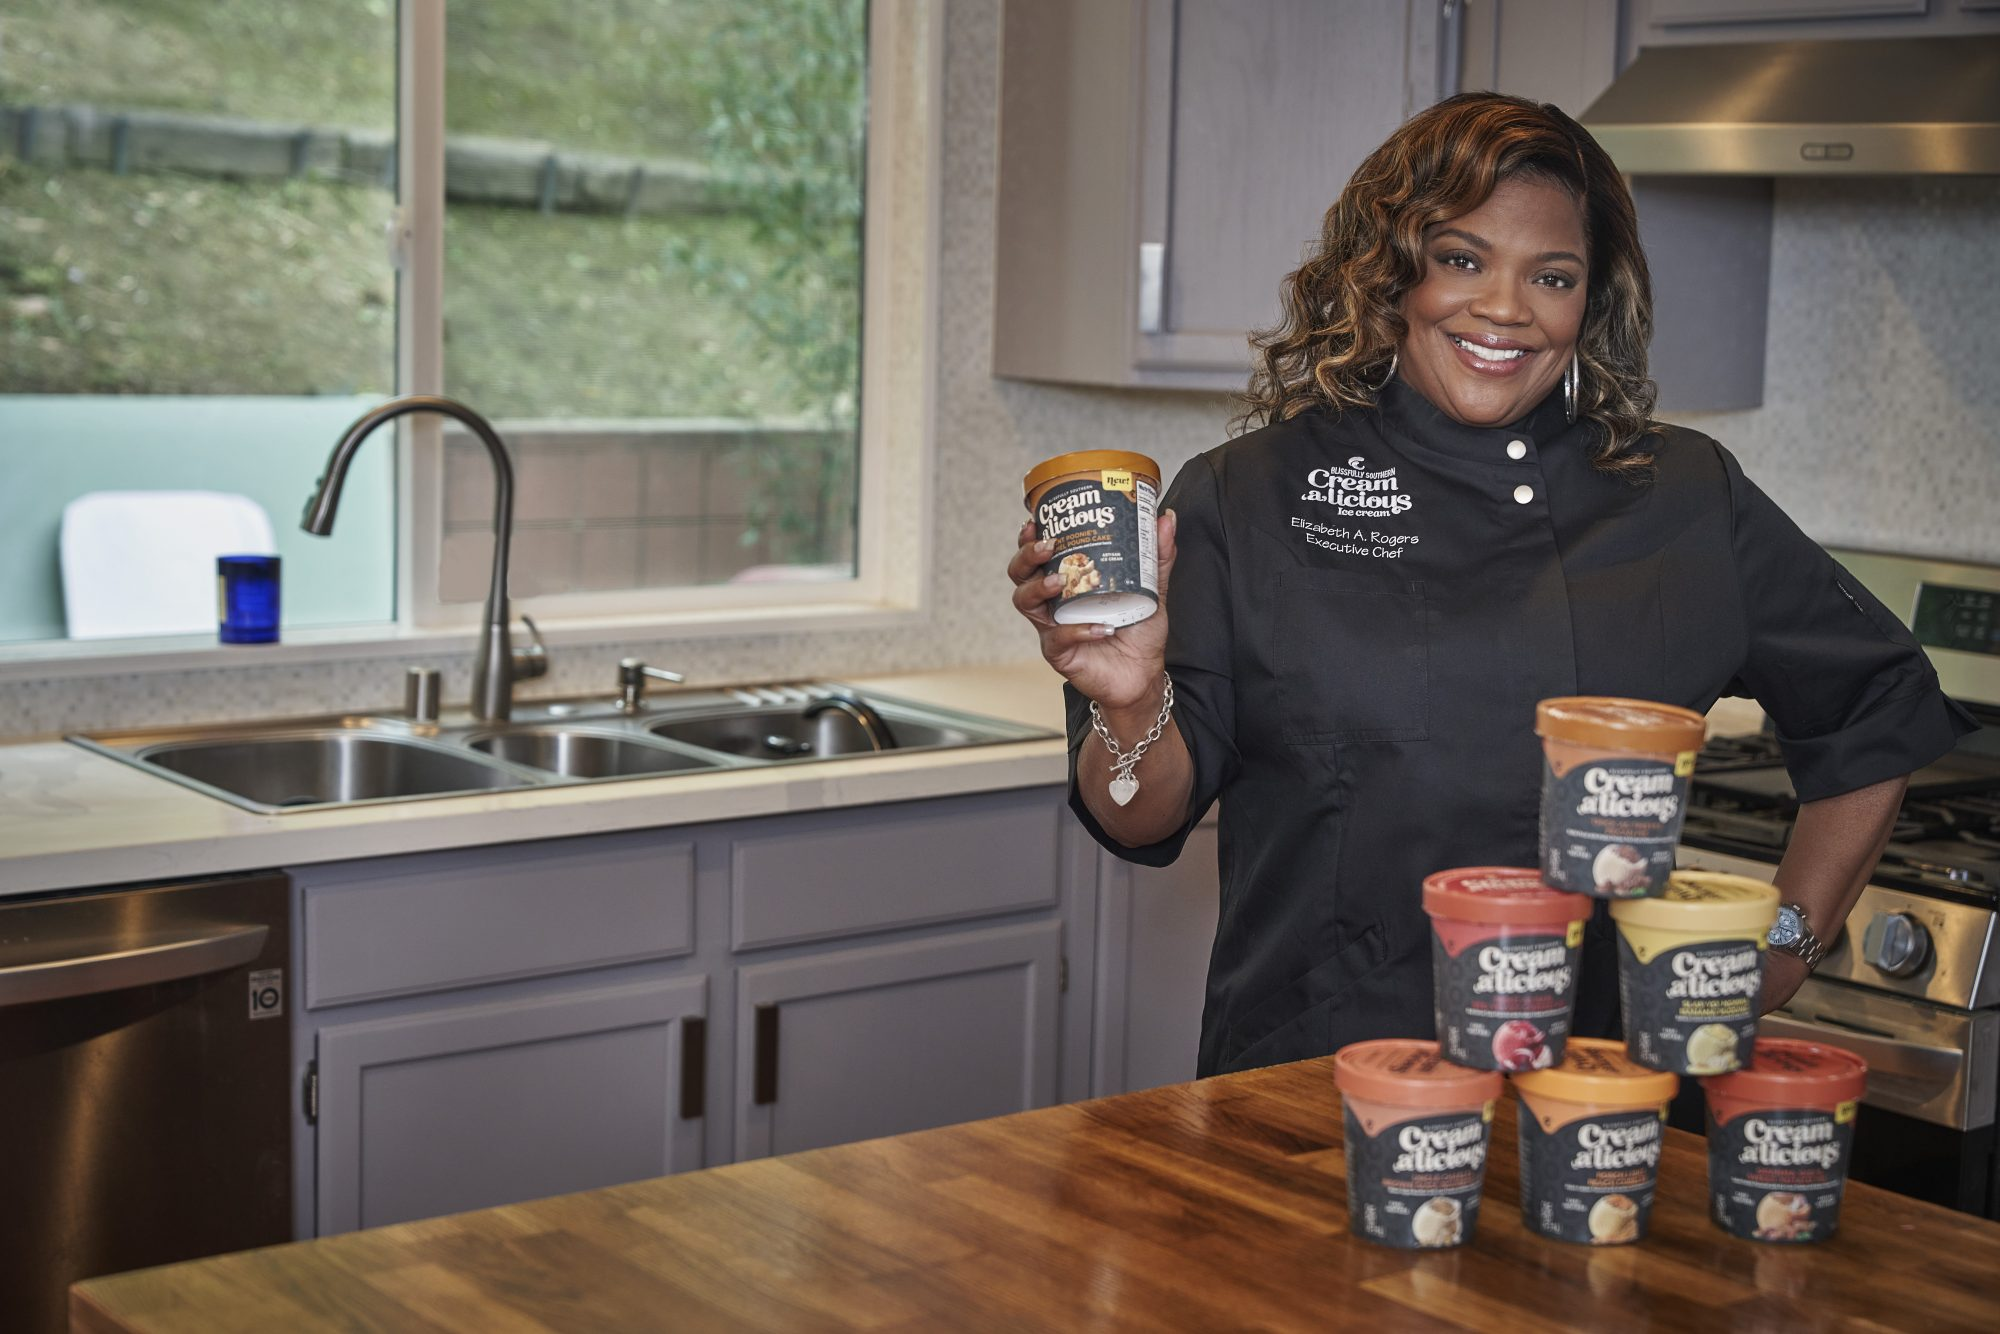 Executive Chef Liz Rogers Launches Creamalicious Ice Cream Brand Inspired by 'Four Generations of Family-Owned Recipes'